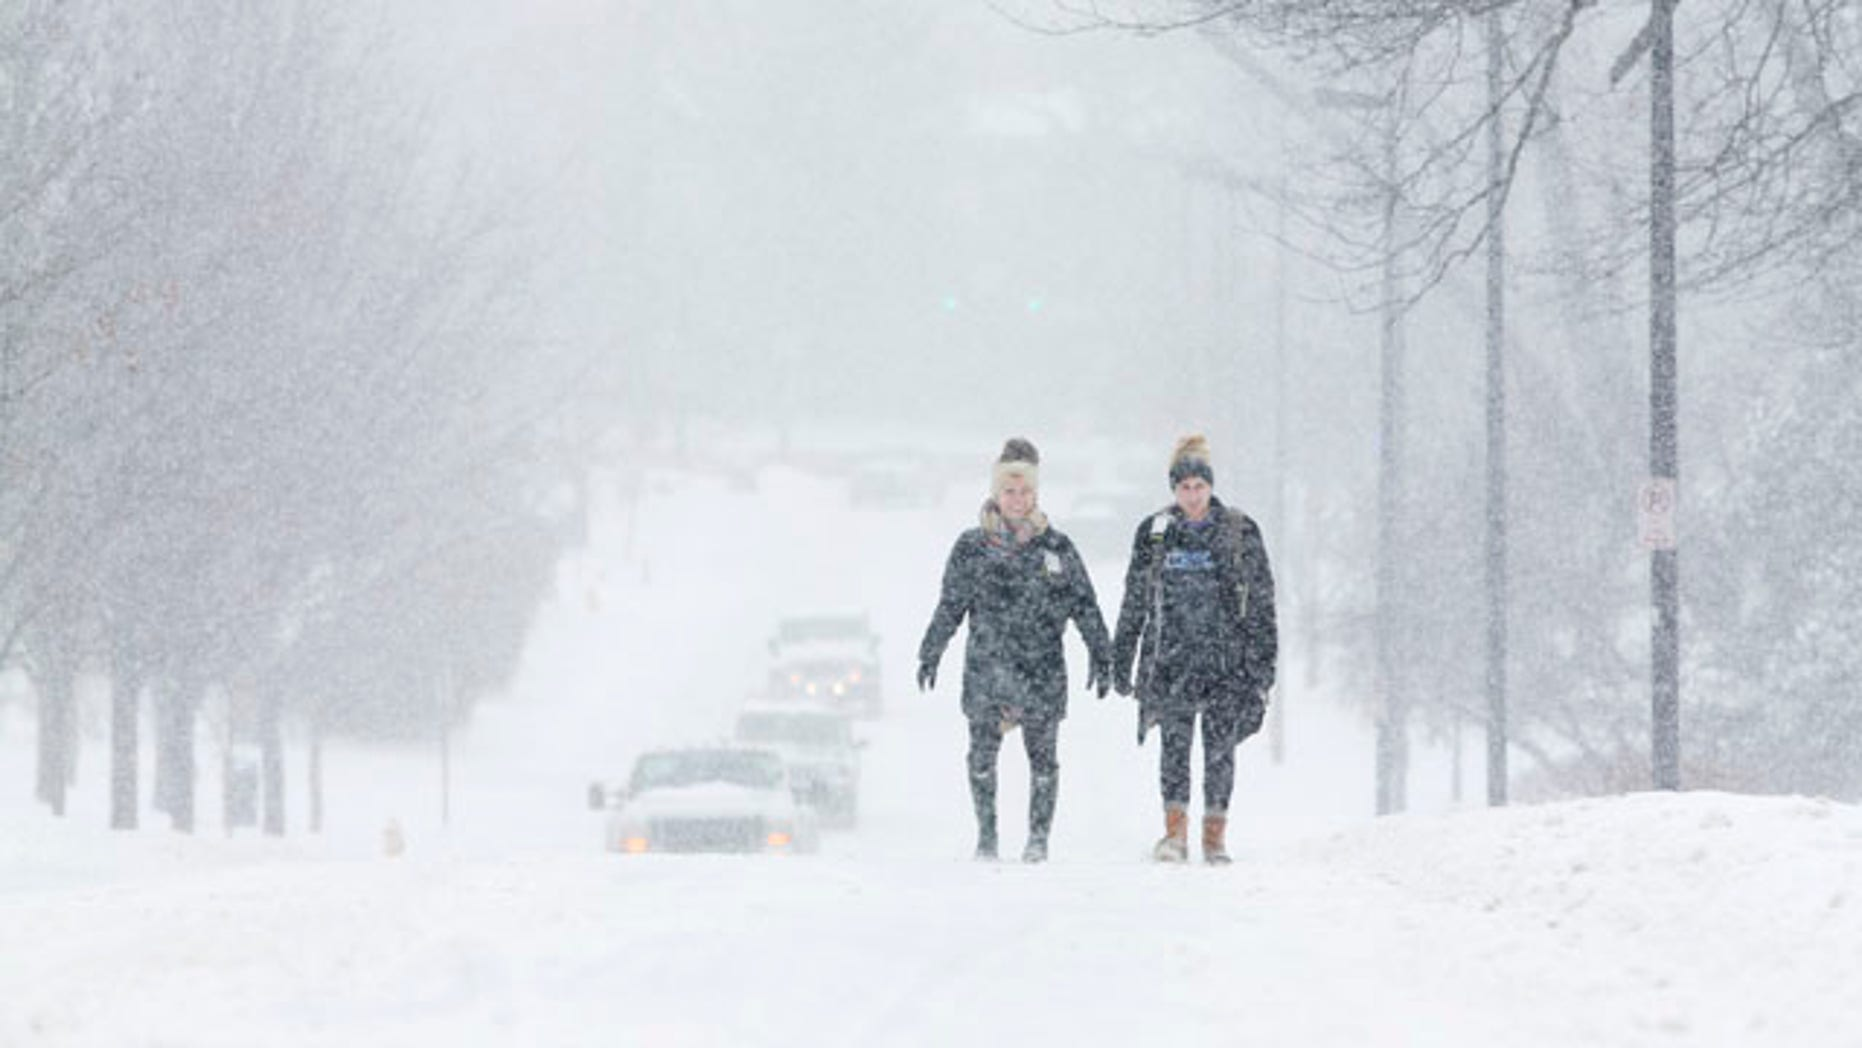 Feb. 16, 2015: University of Kentucky students Courtney Wiseman, left, and Abby Lerner walk home after studying on campus even as classes were canceled for the day in Lexington. (AP Photo/David Stephenson)